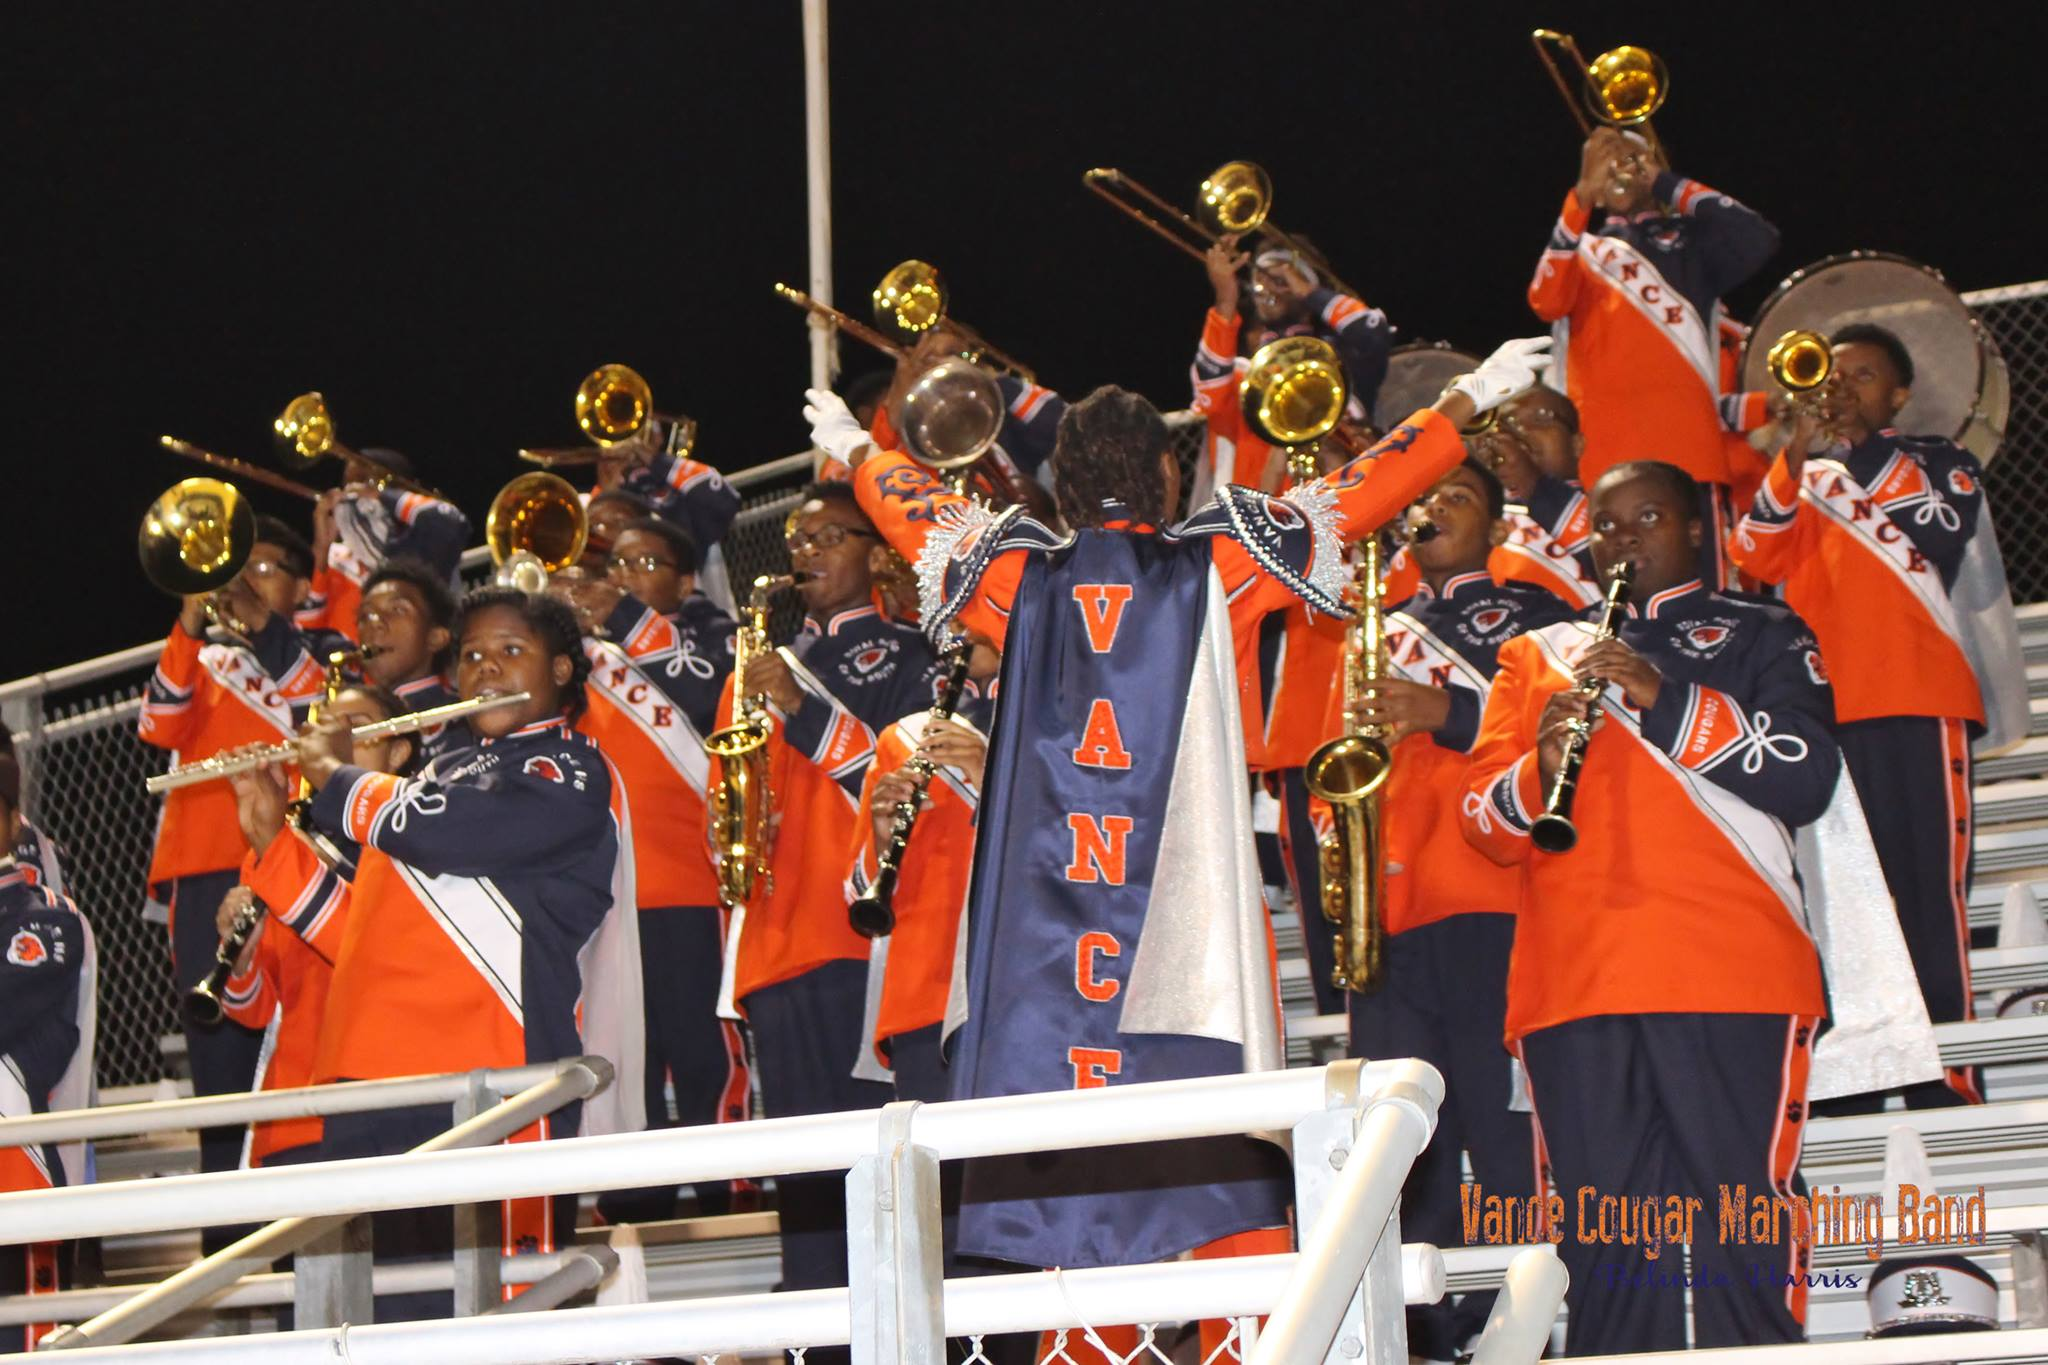 vance cougar marching band